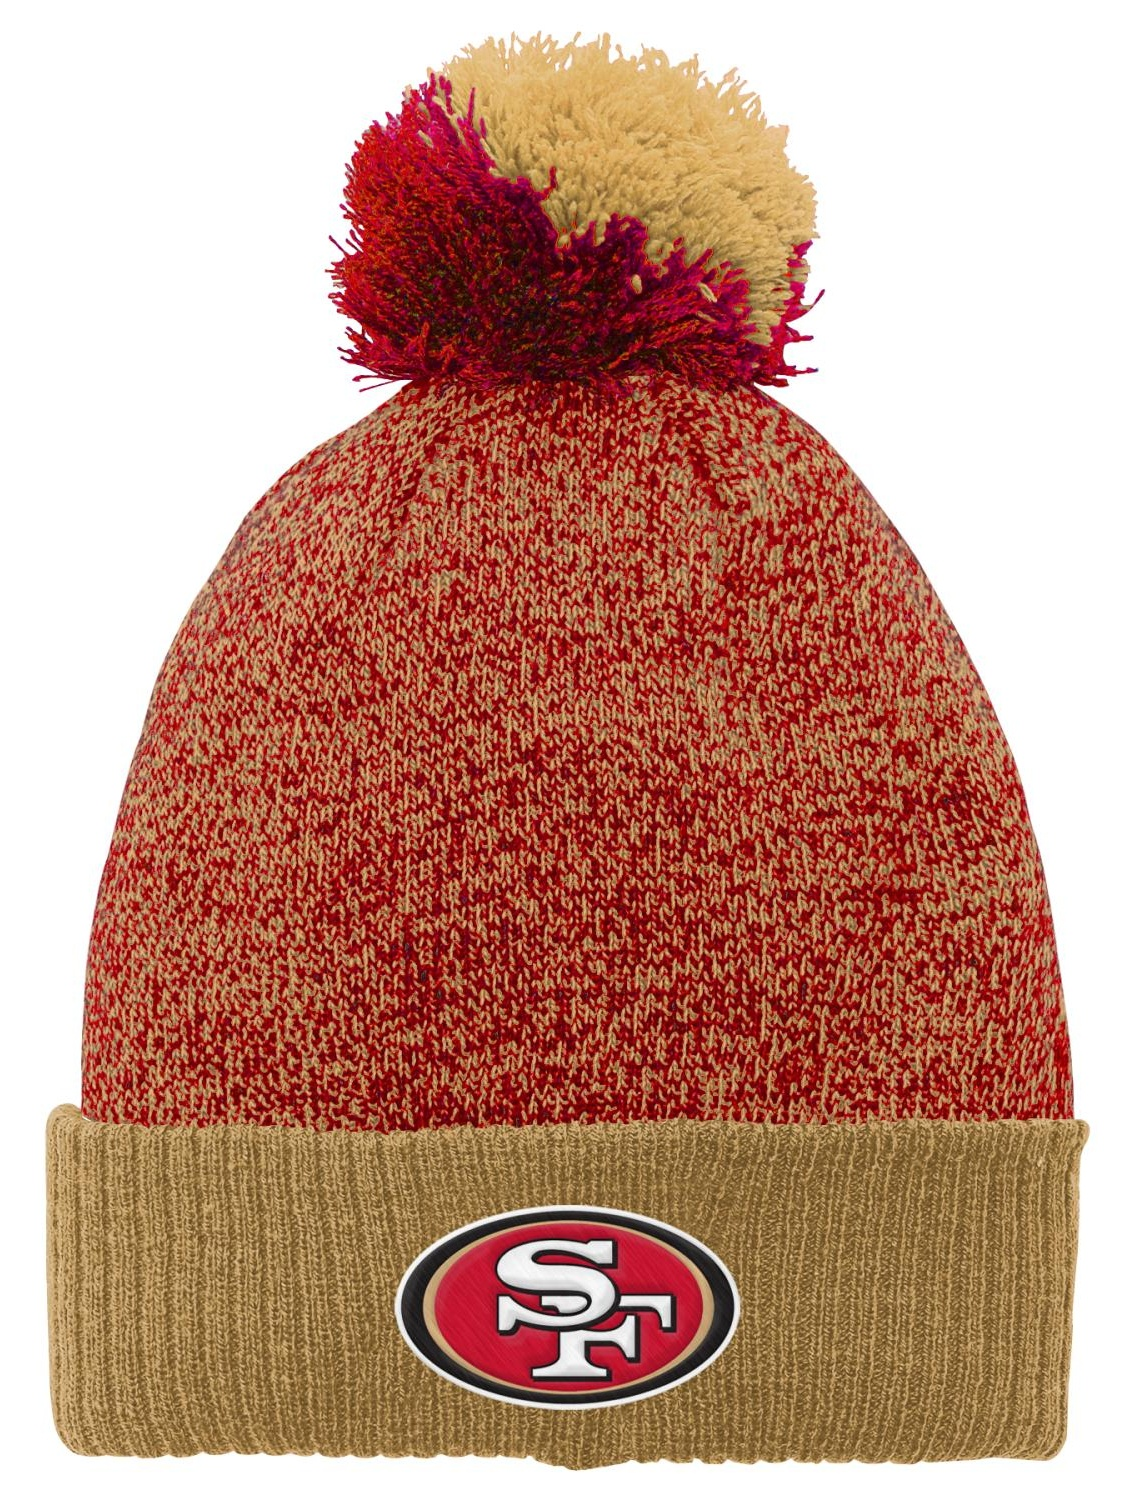 """San Francisco 49ers Youth NFL """"Basic"""" Cuffed Knit Hat w  Pom by Outerstuff"""